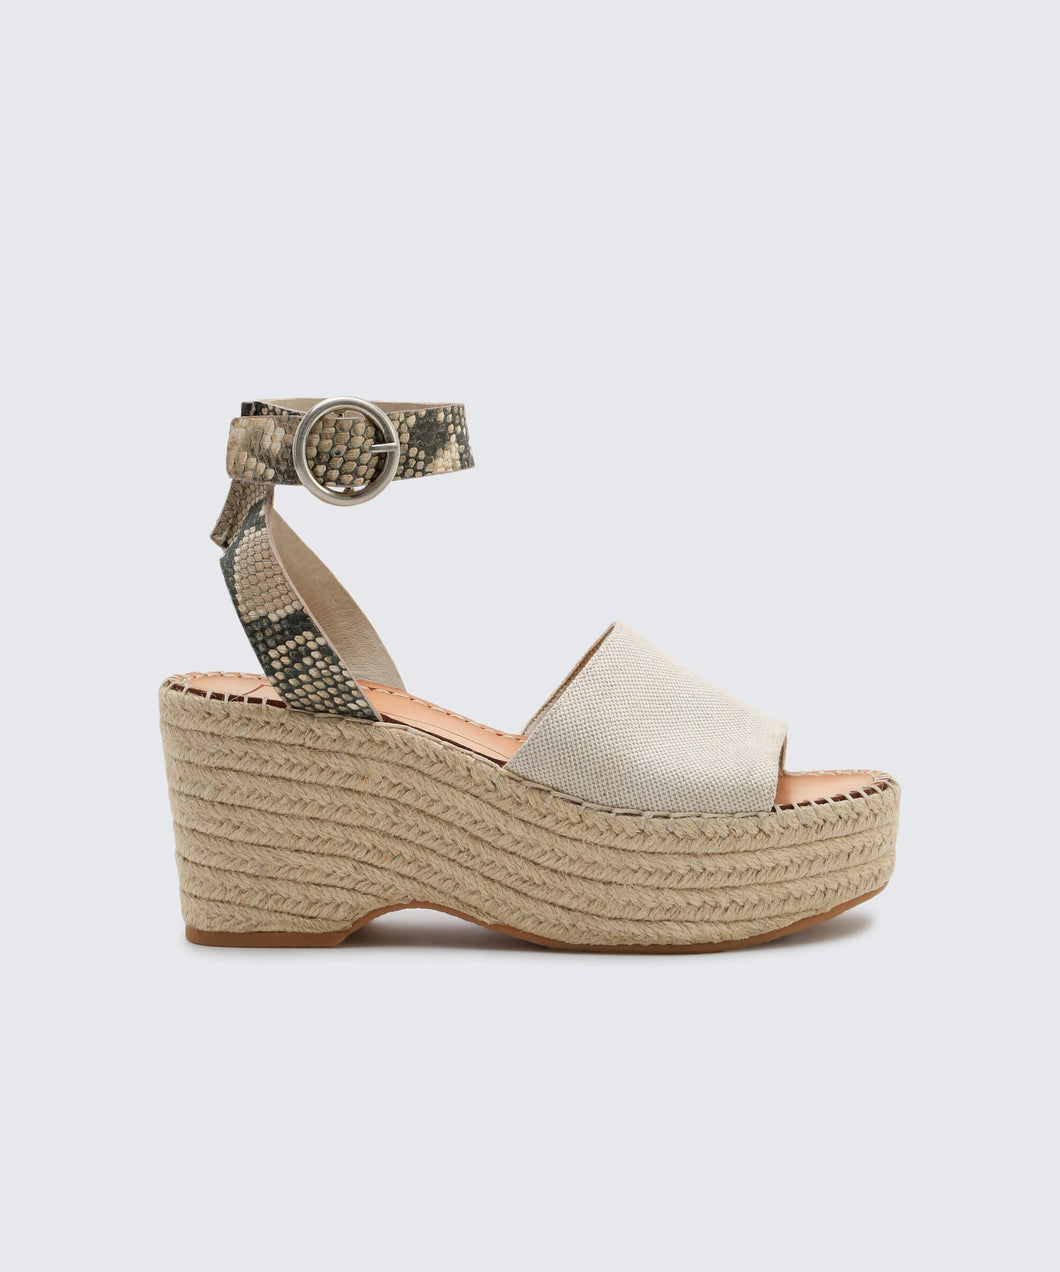 LESLY WEDGES IN NATURAL -   Dolce Vita